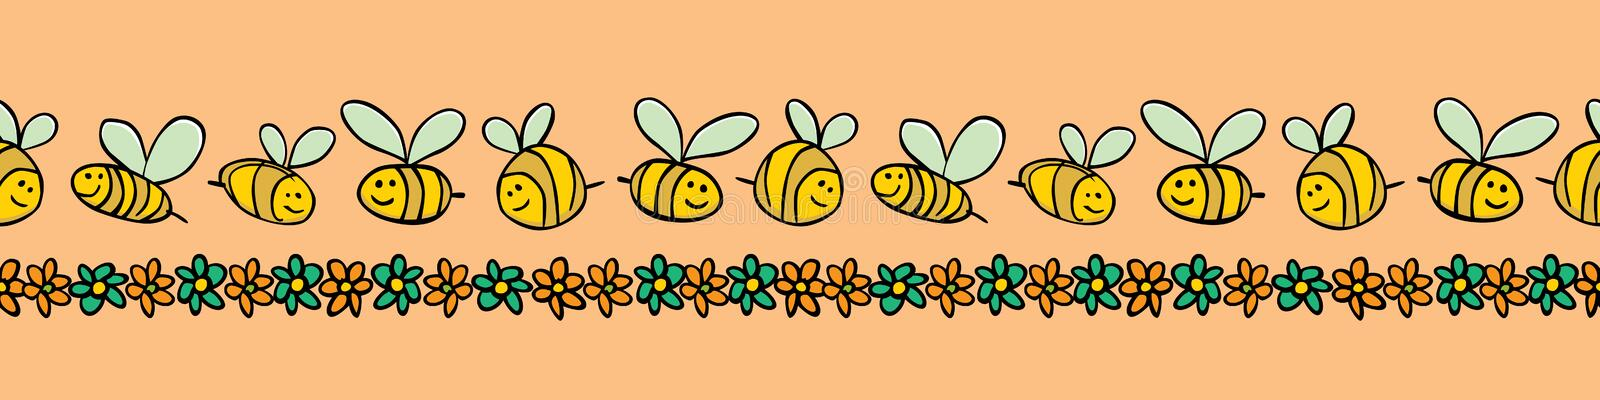 Vector pastel orange bees and flowers stripes horizontal border pattern. Suitable for gift wrap, textile and wallpaper. vector illustration